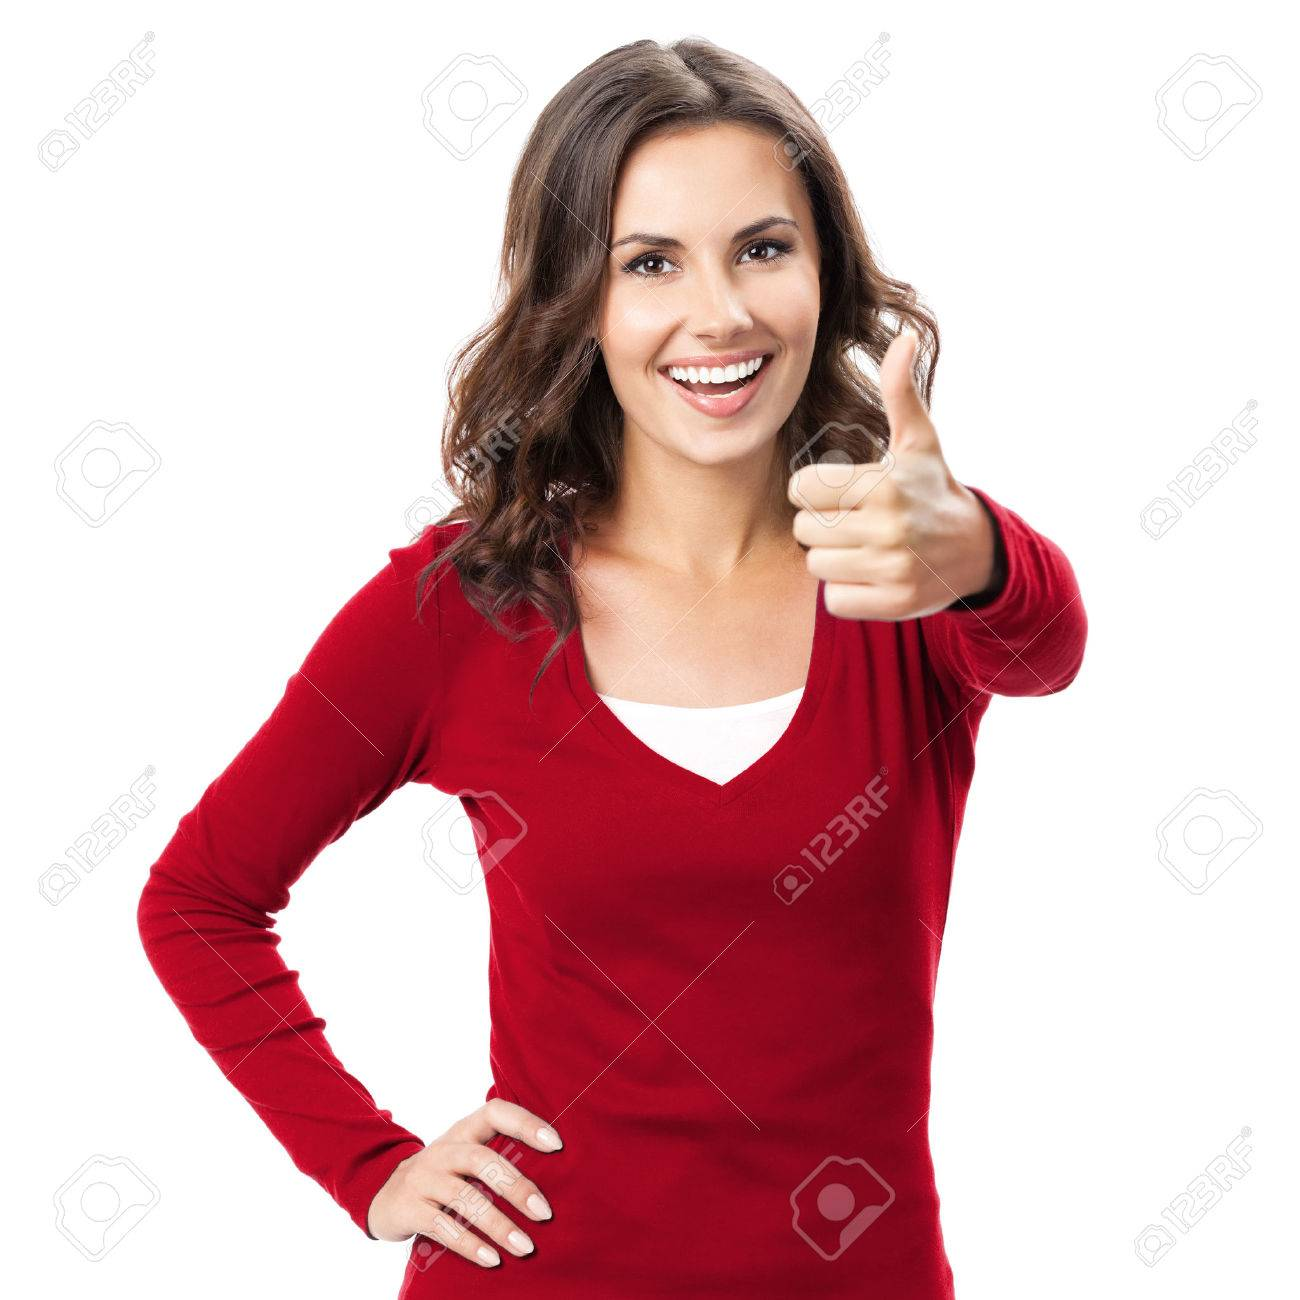 Happy smiling beautiful young brunette woman showing thumbs up gesture, isolated on white background Banque d'images - 41224596